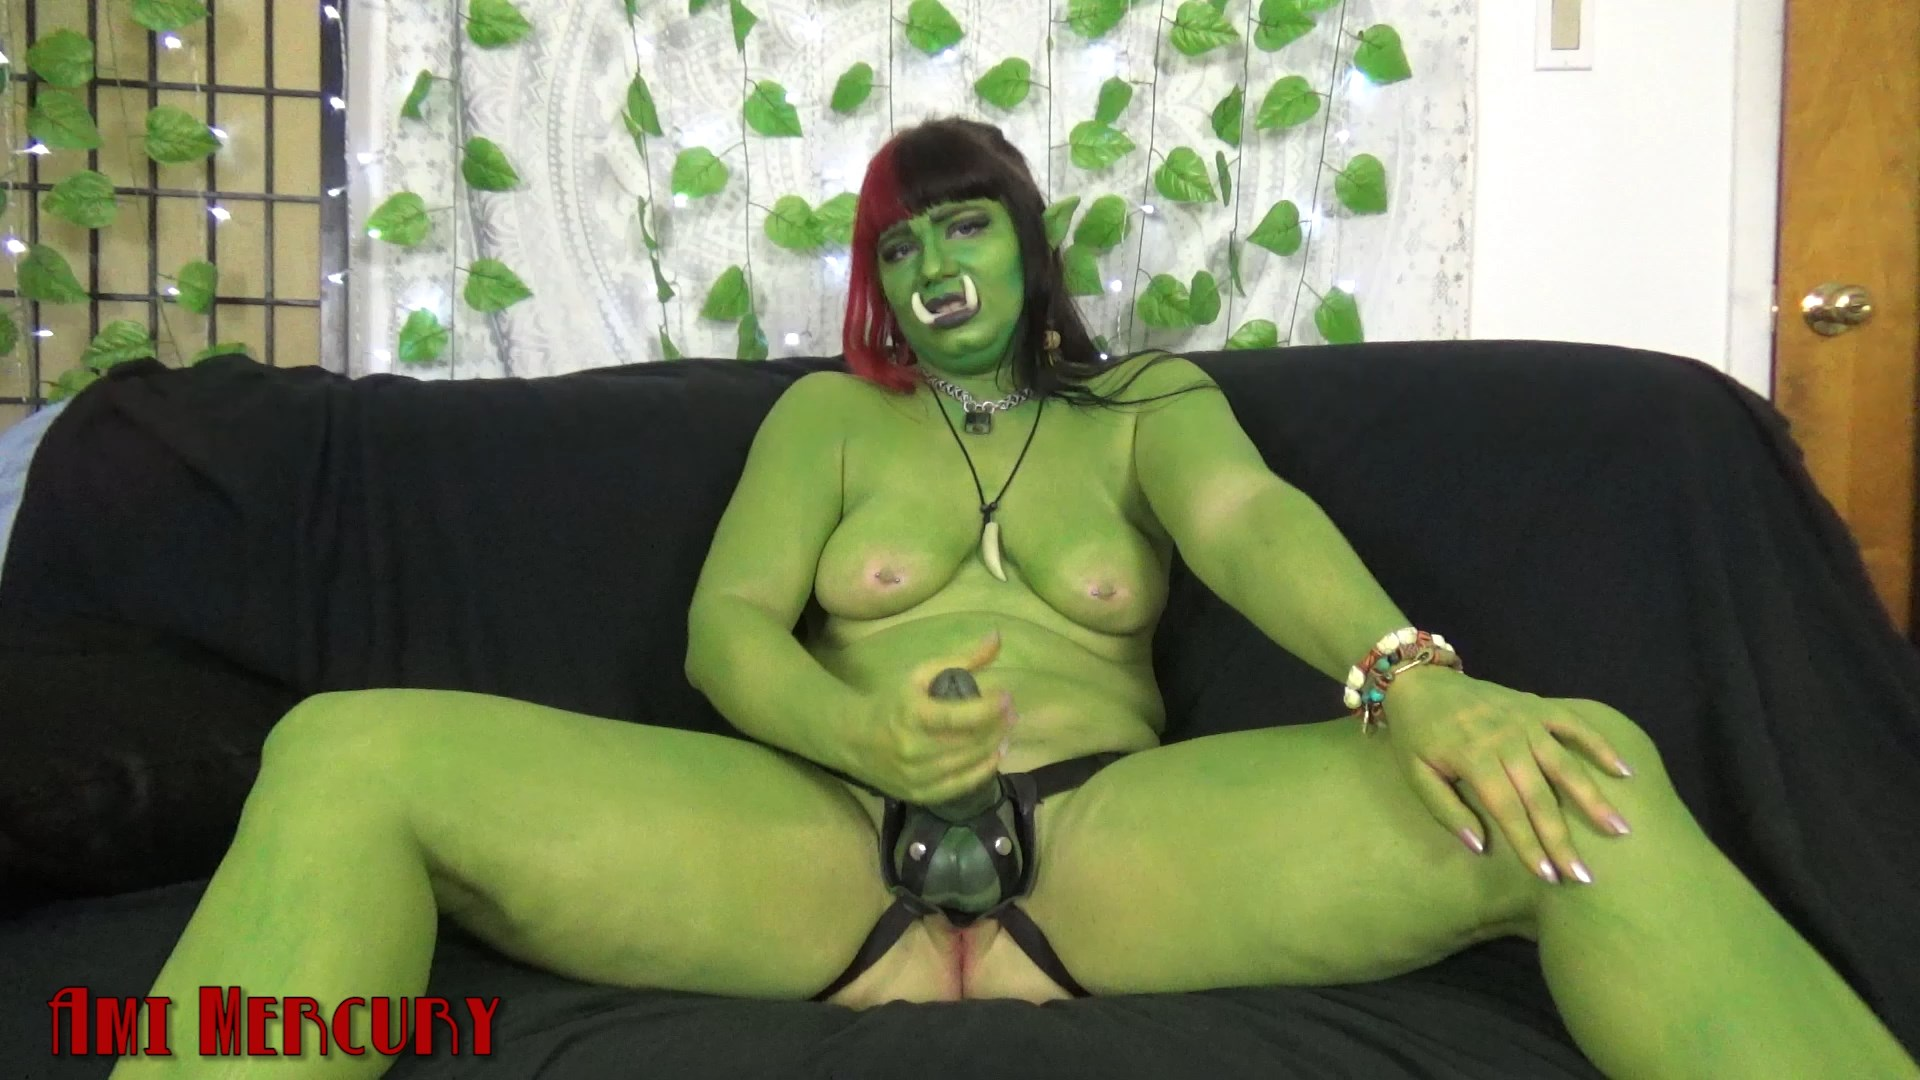 Ami Mercury - Orc-Mommy Strap-On JOI